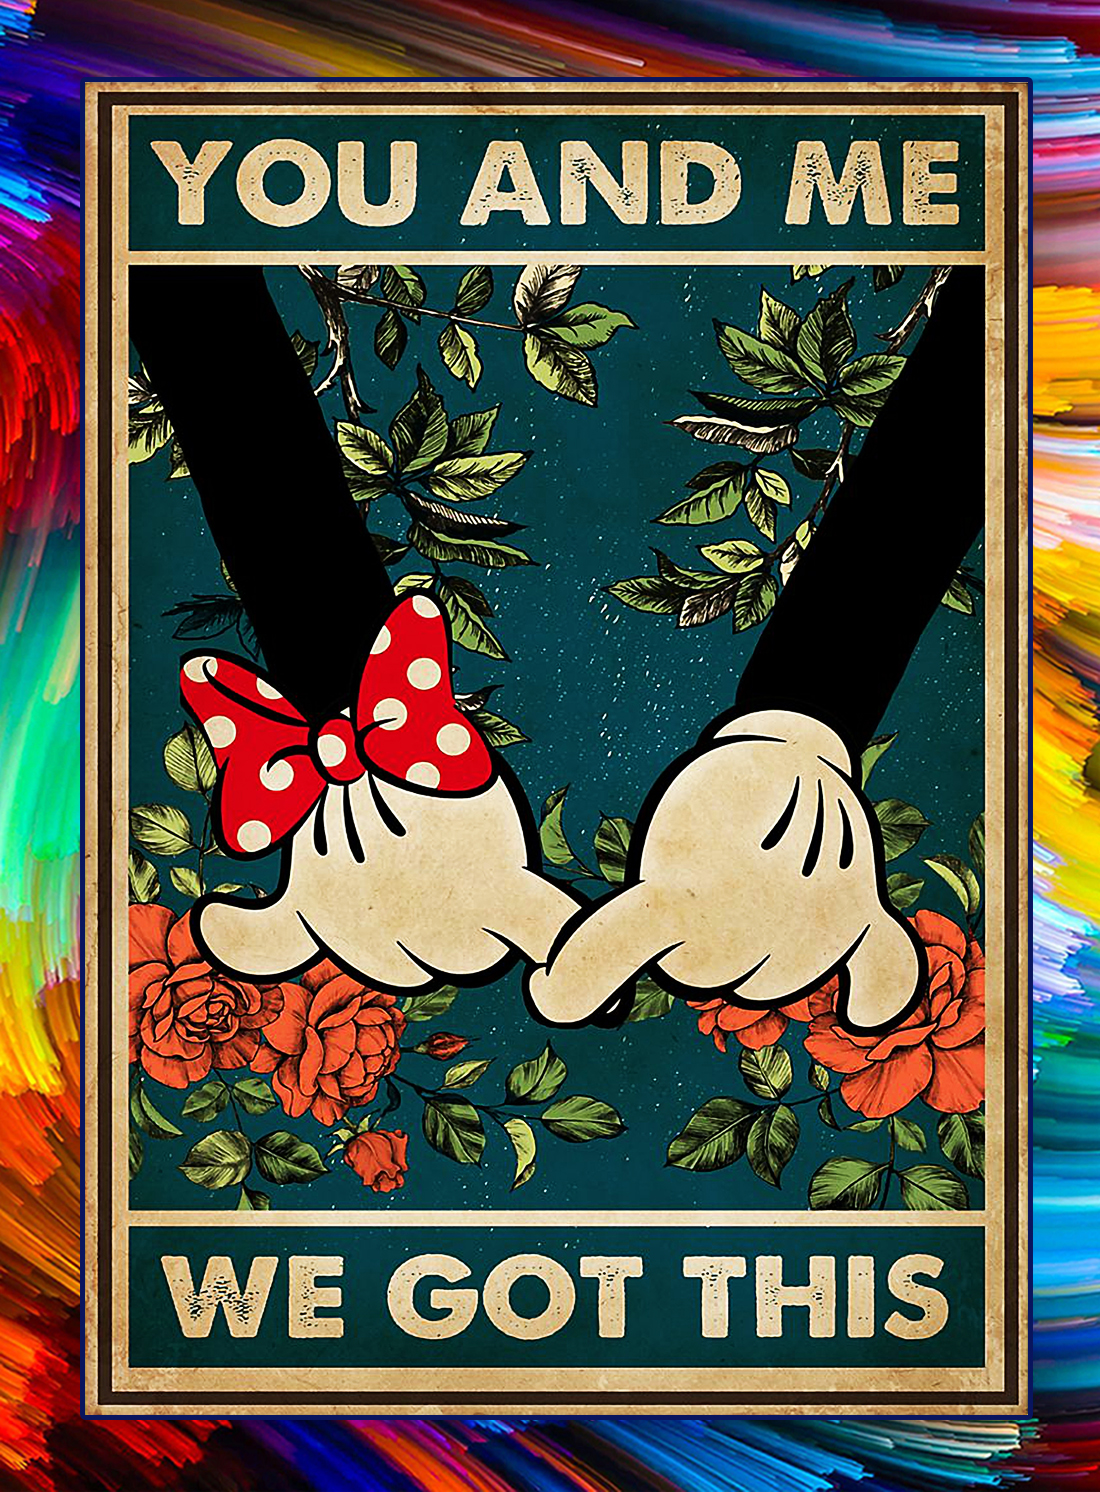 You and me we got this mickey and minnie poster - A4